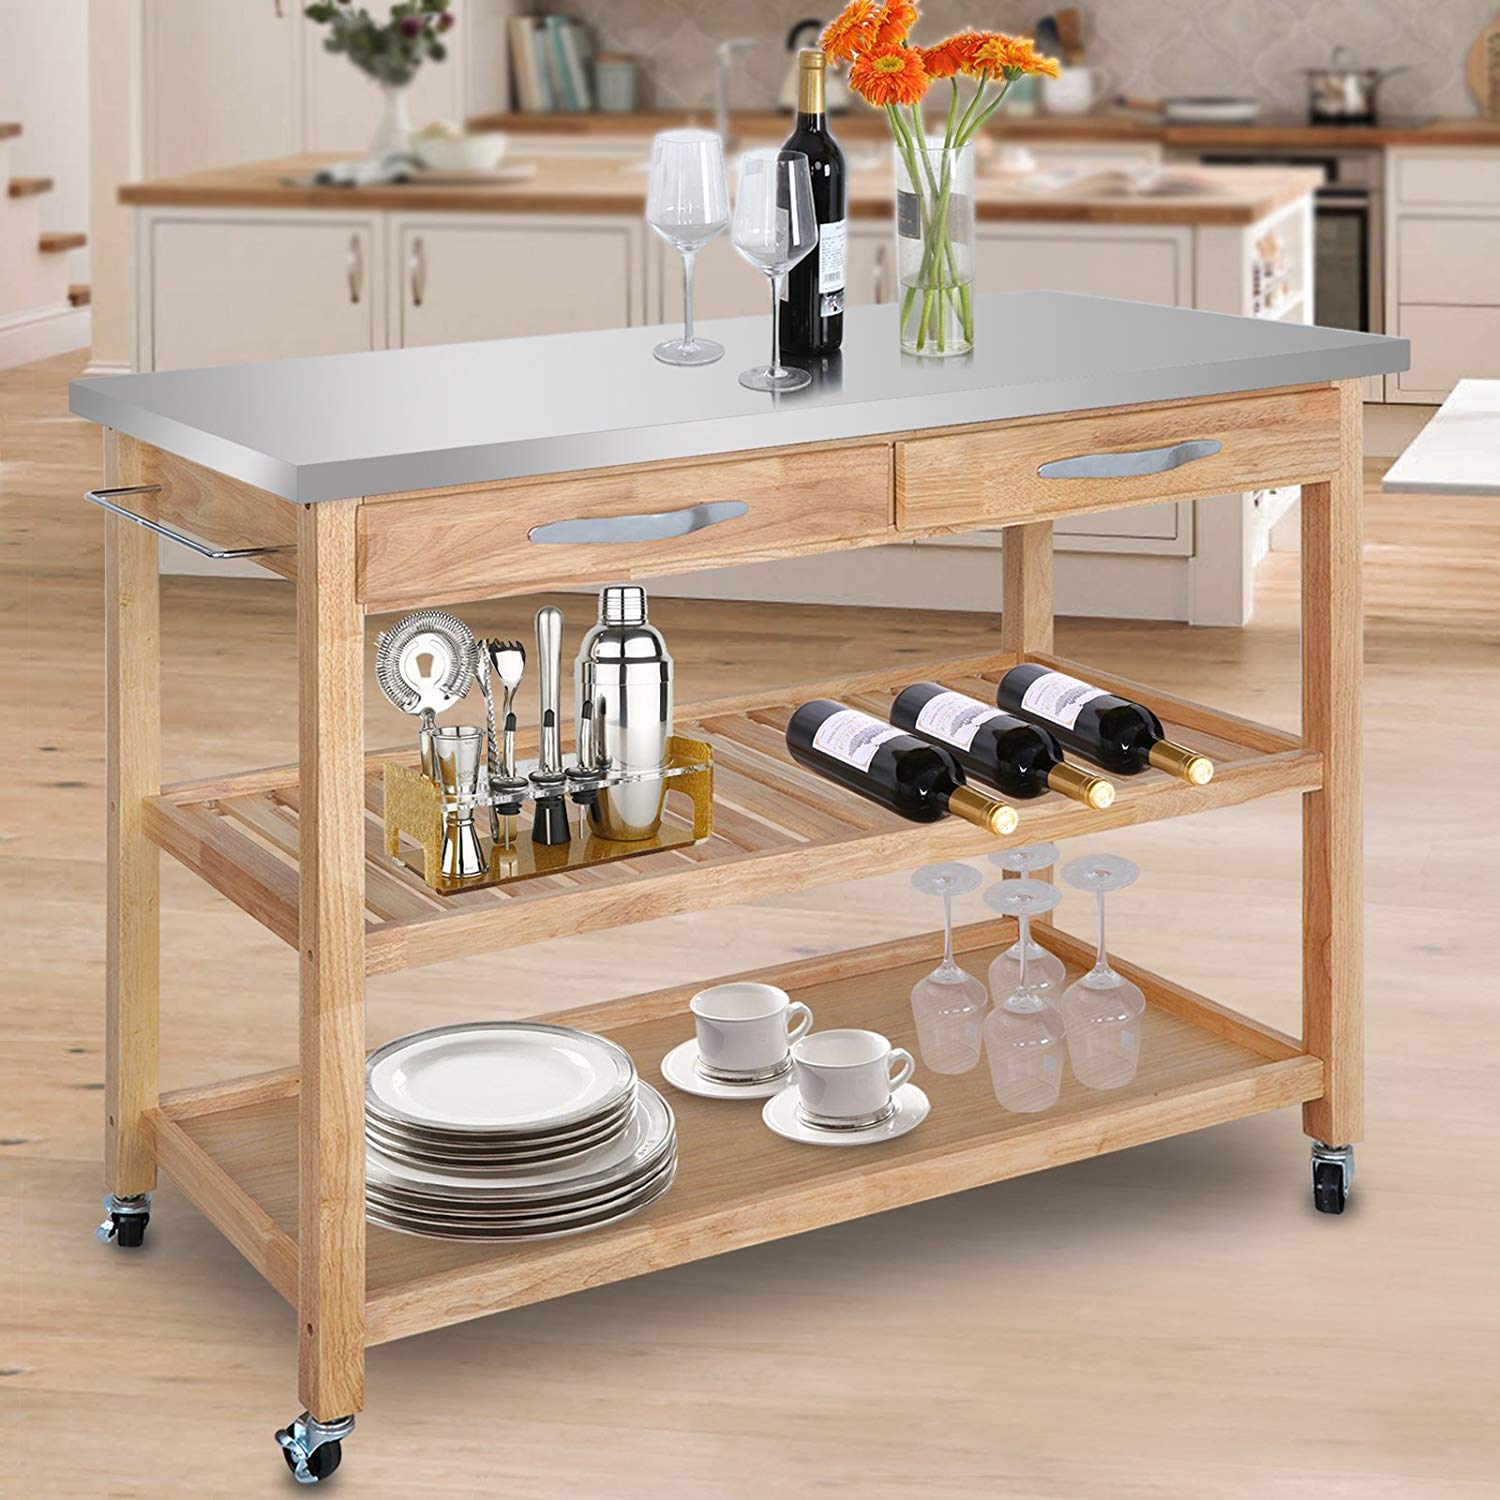 Nova Microdermabrasion Rolling Kitchen Island Cart Storage Utility Trolley Cart w Storage Drawers Stainless Steel Countertop